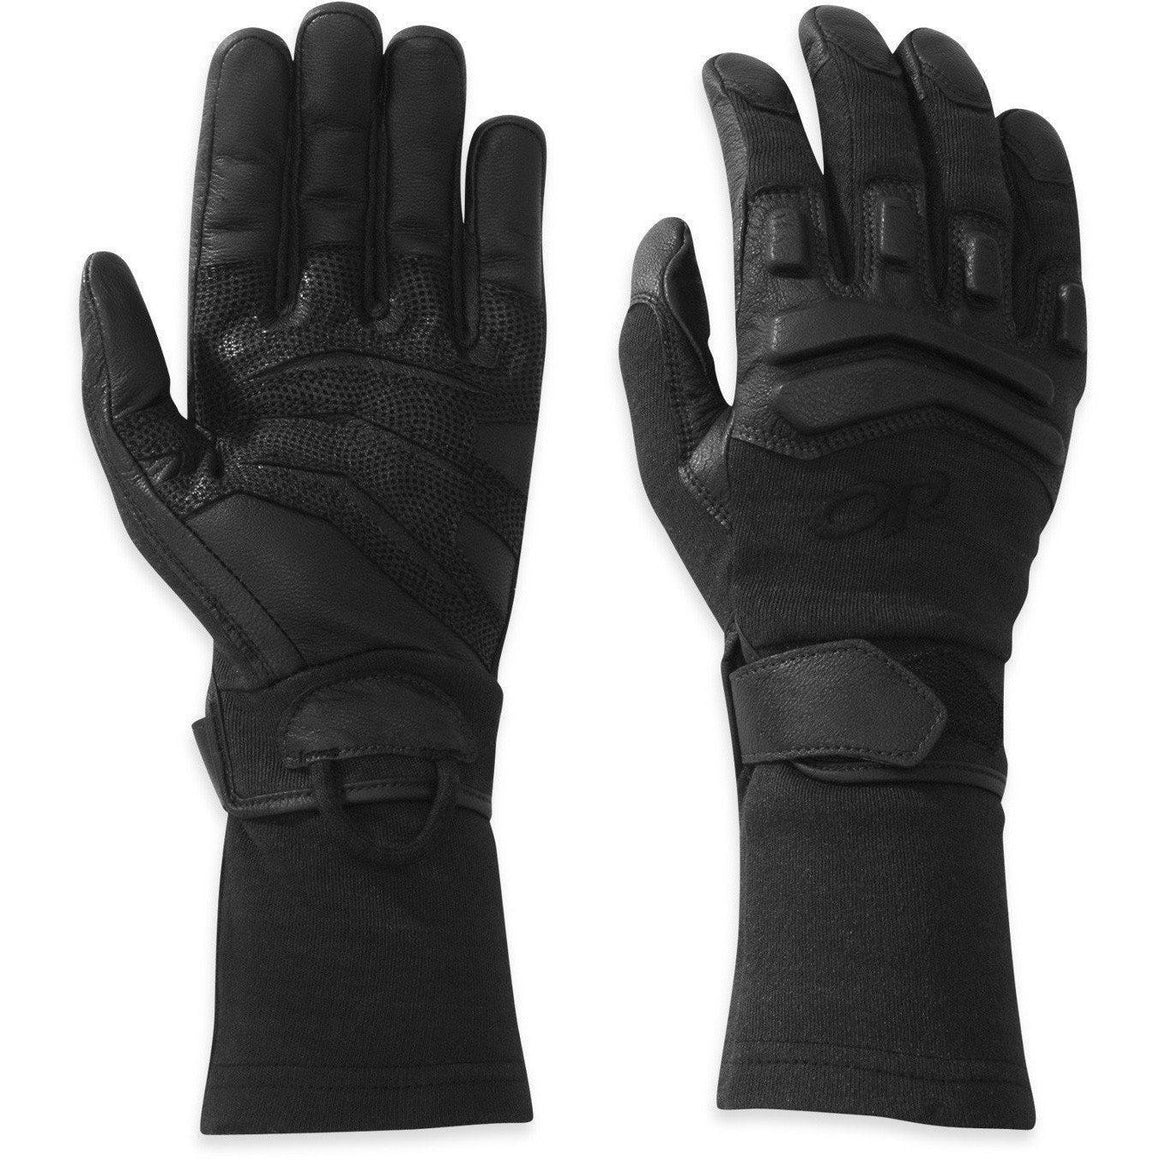 Outdoor Research Firemark Gauntlet Gloves, USA